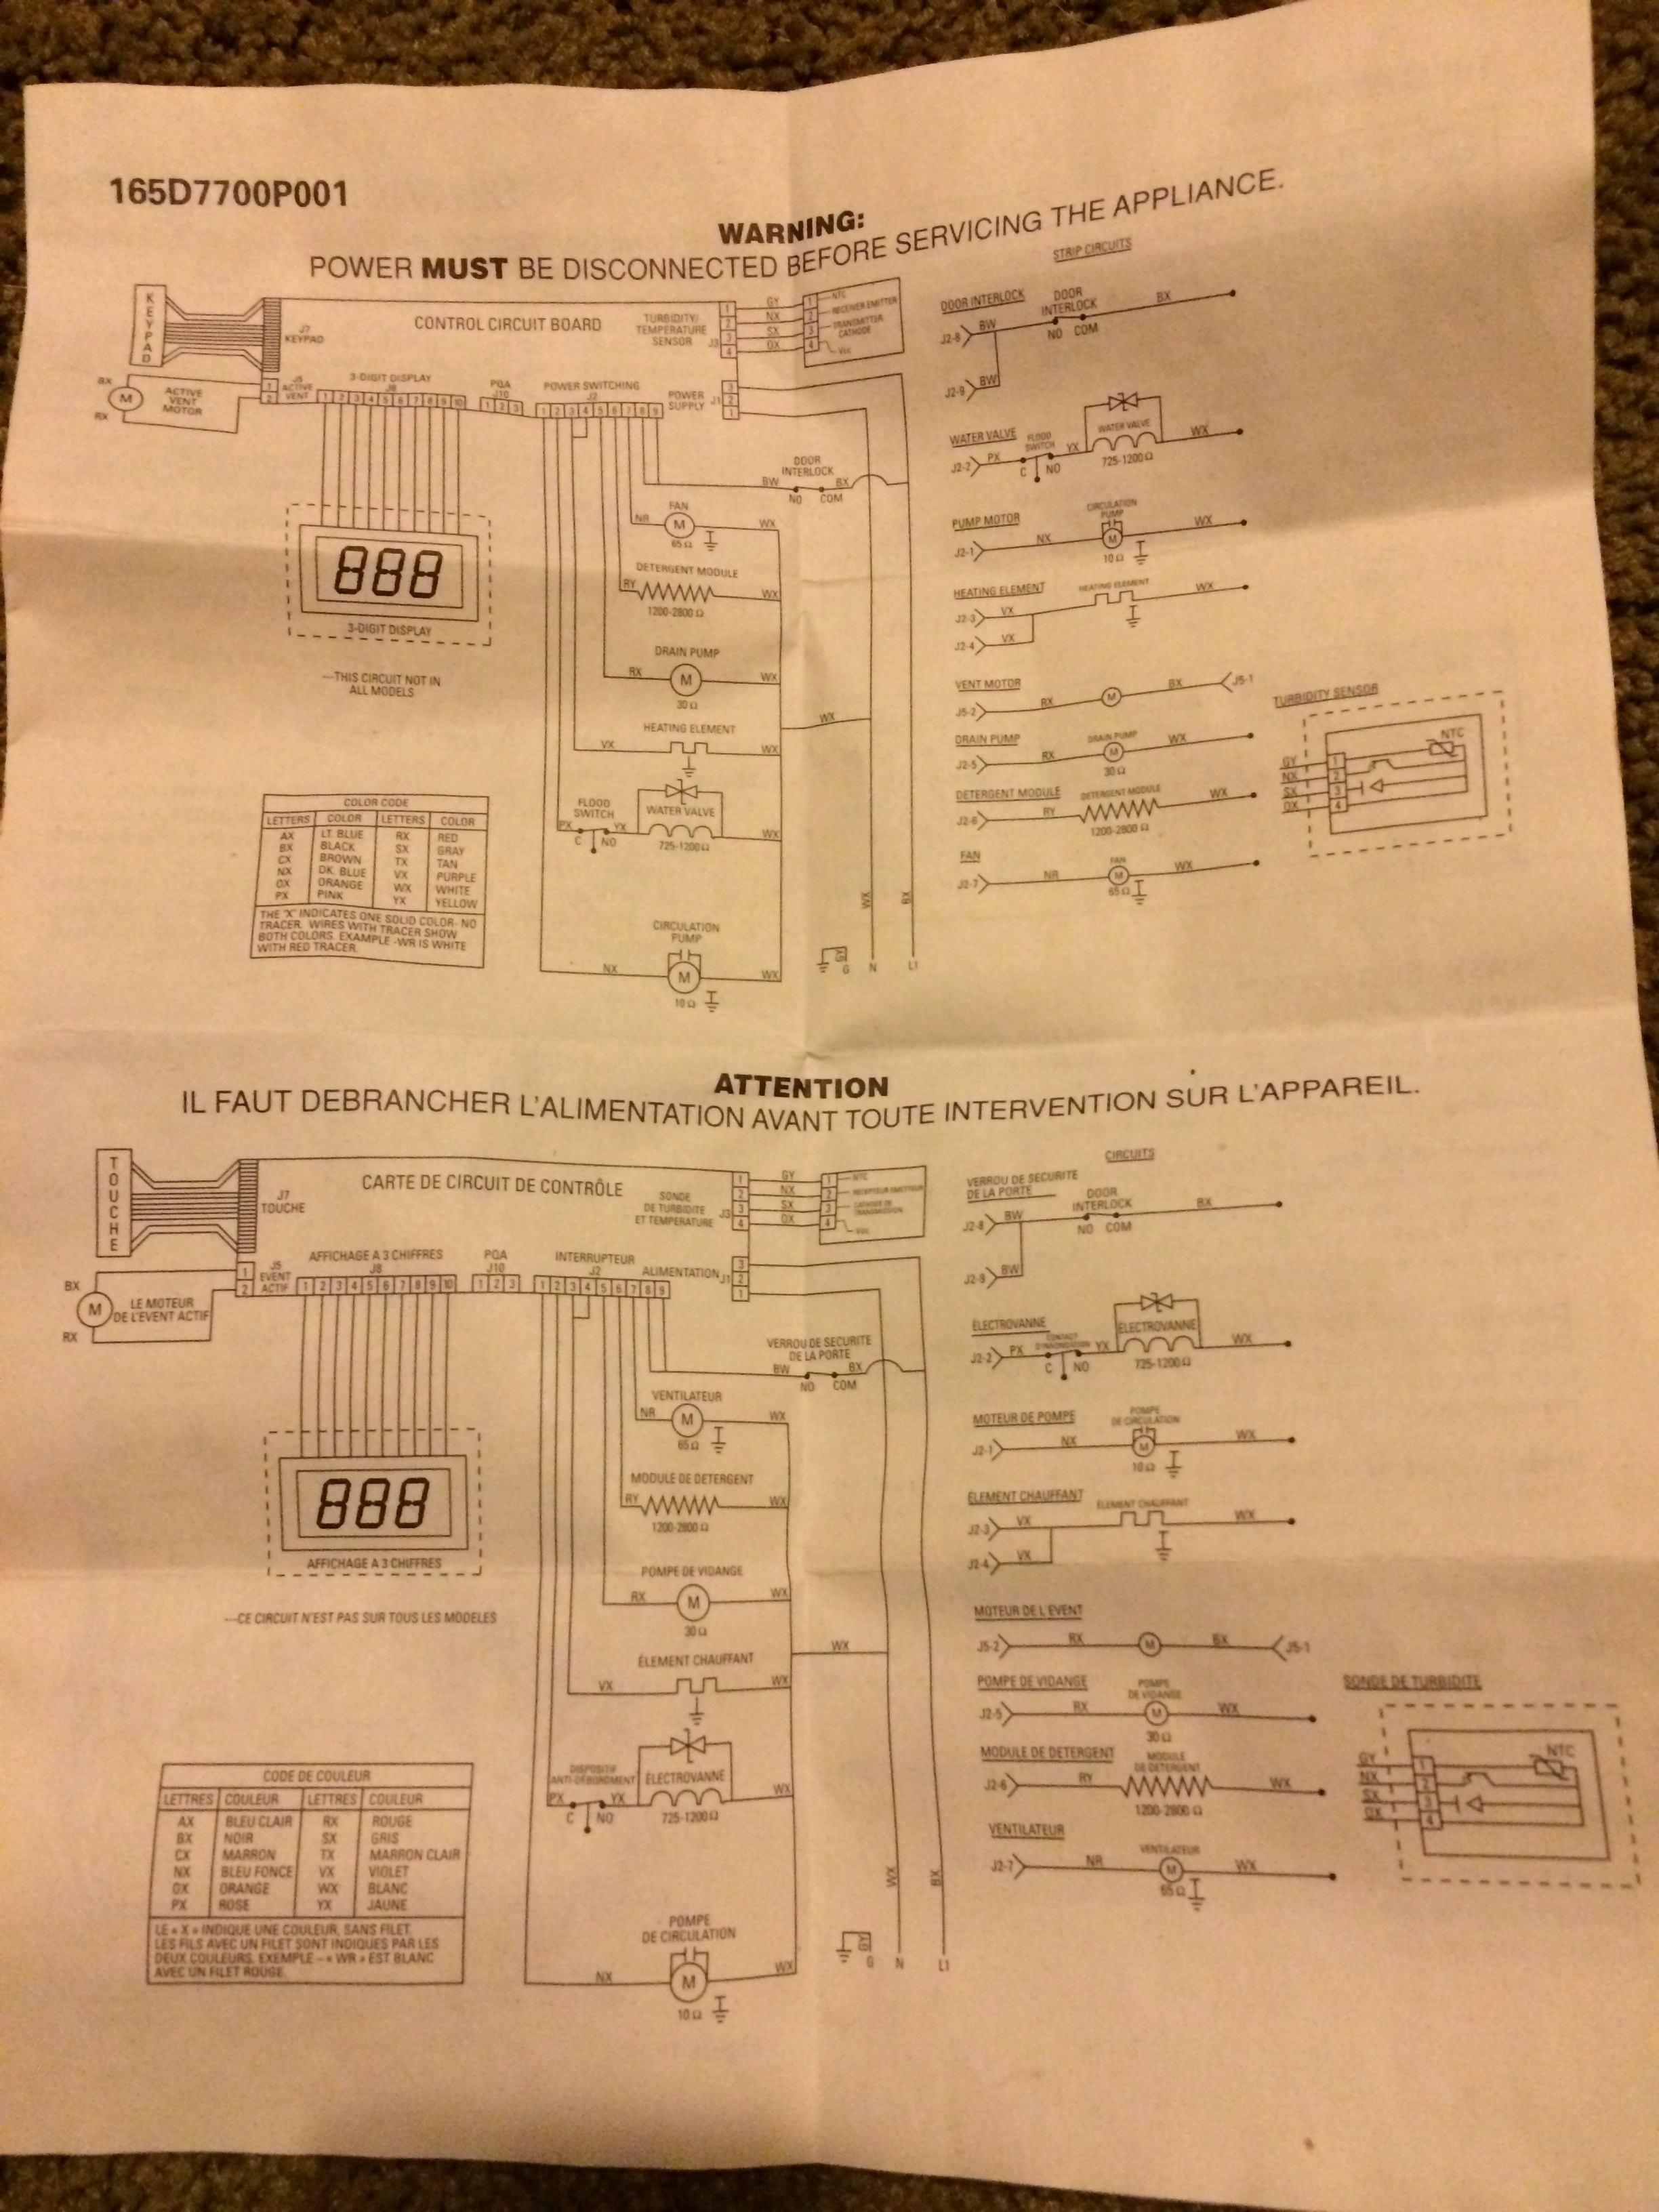 I Have A Ge Profile Pdw9880j00ss Dishwasher  I Recently Replaced